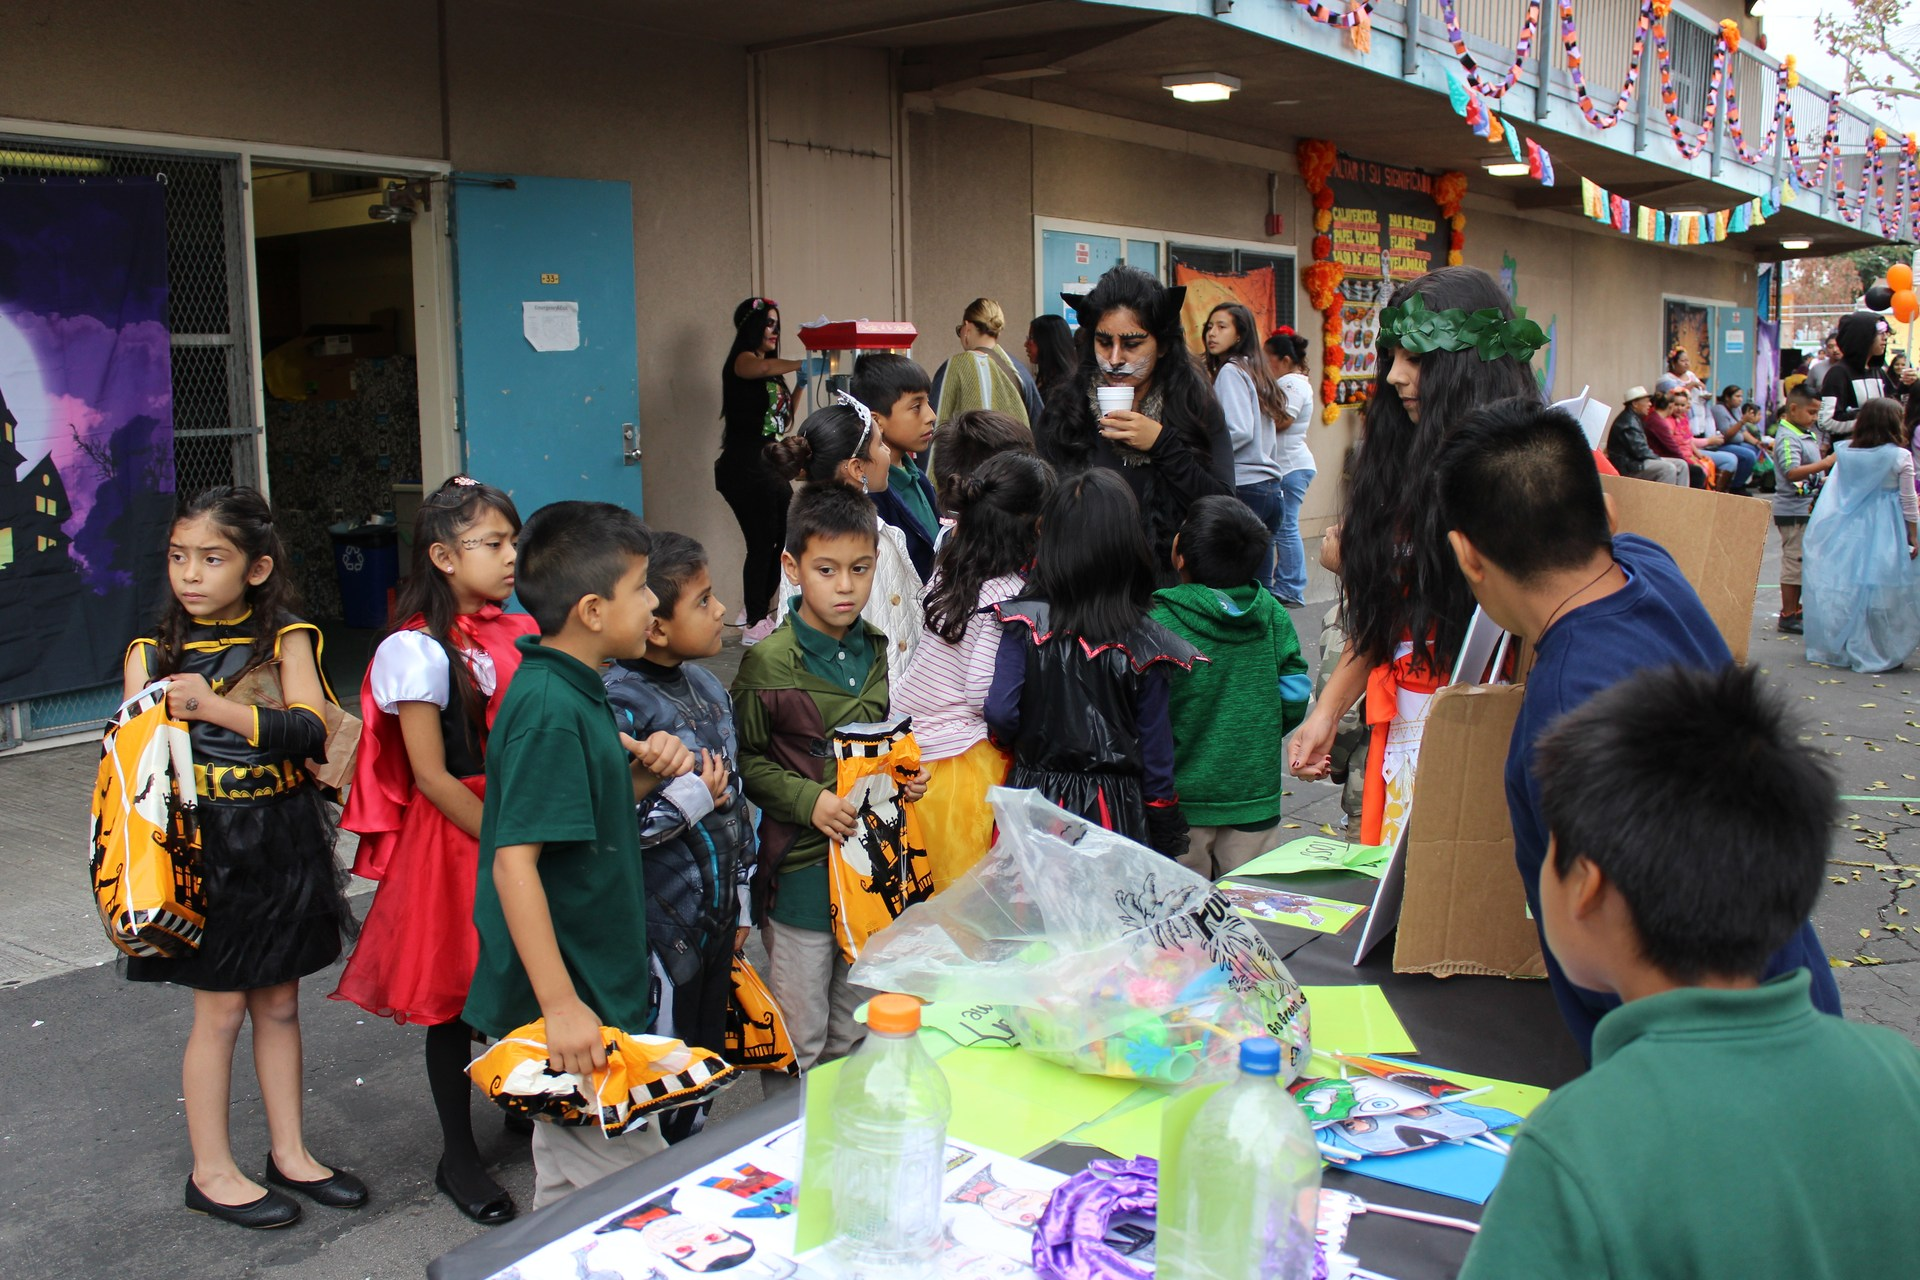 Students engaged in Halloween carnival